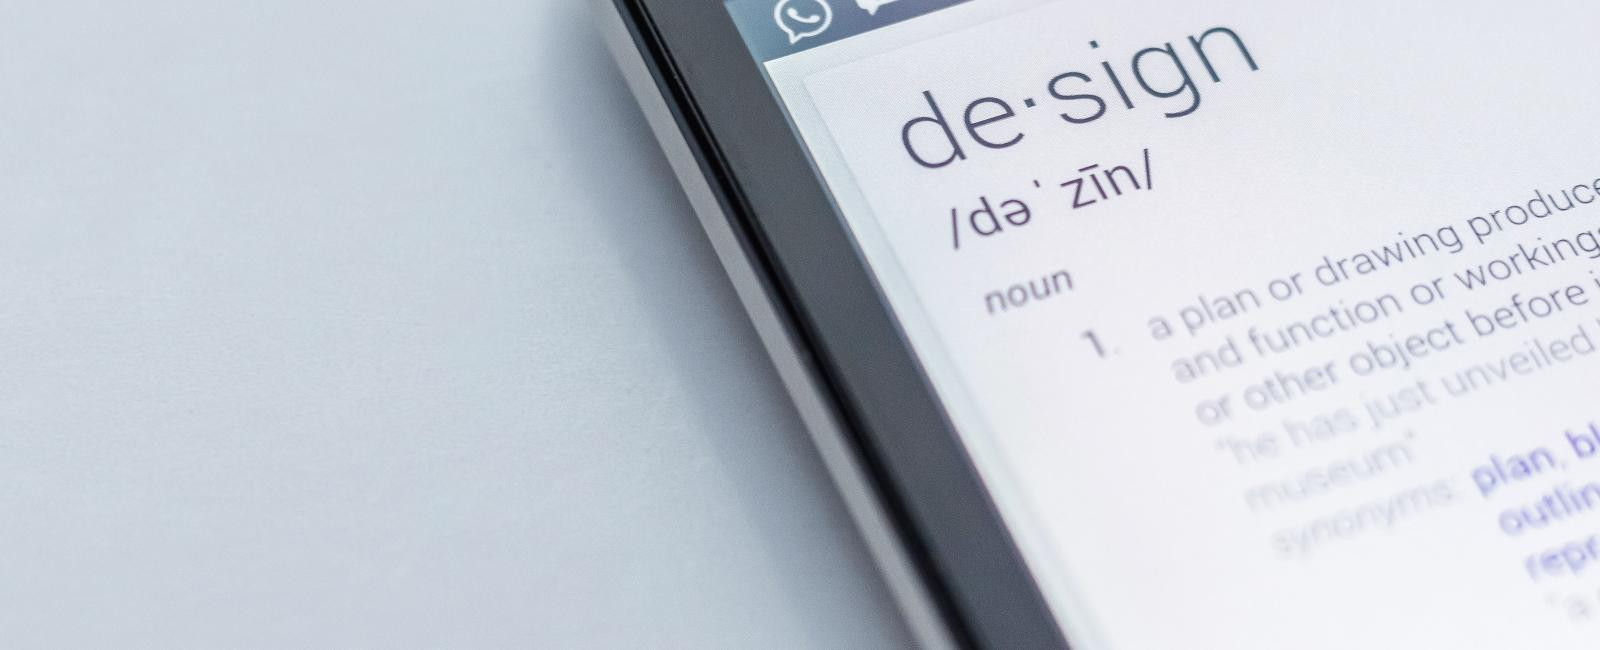 Close up of the definition of design on a smartphone.